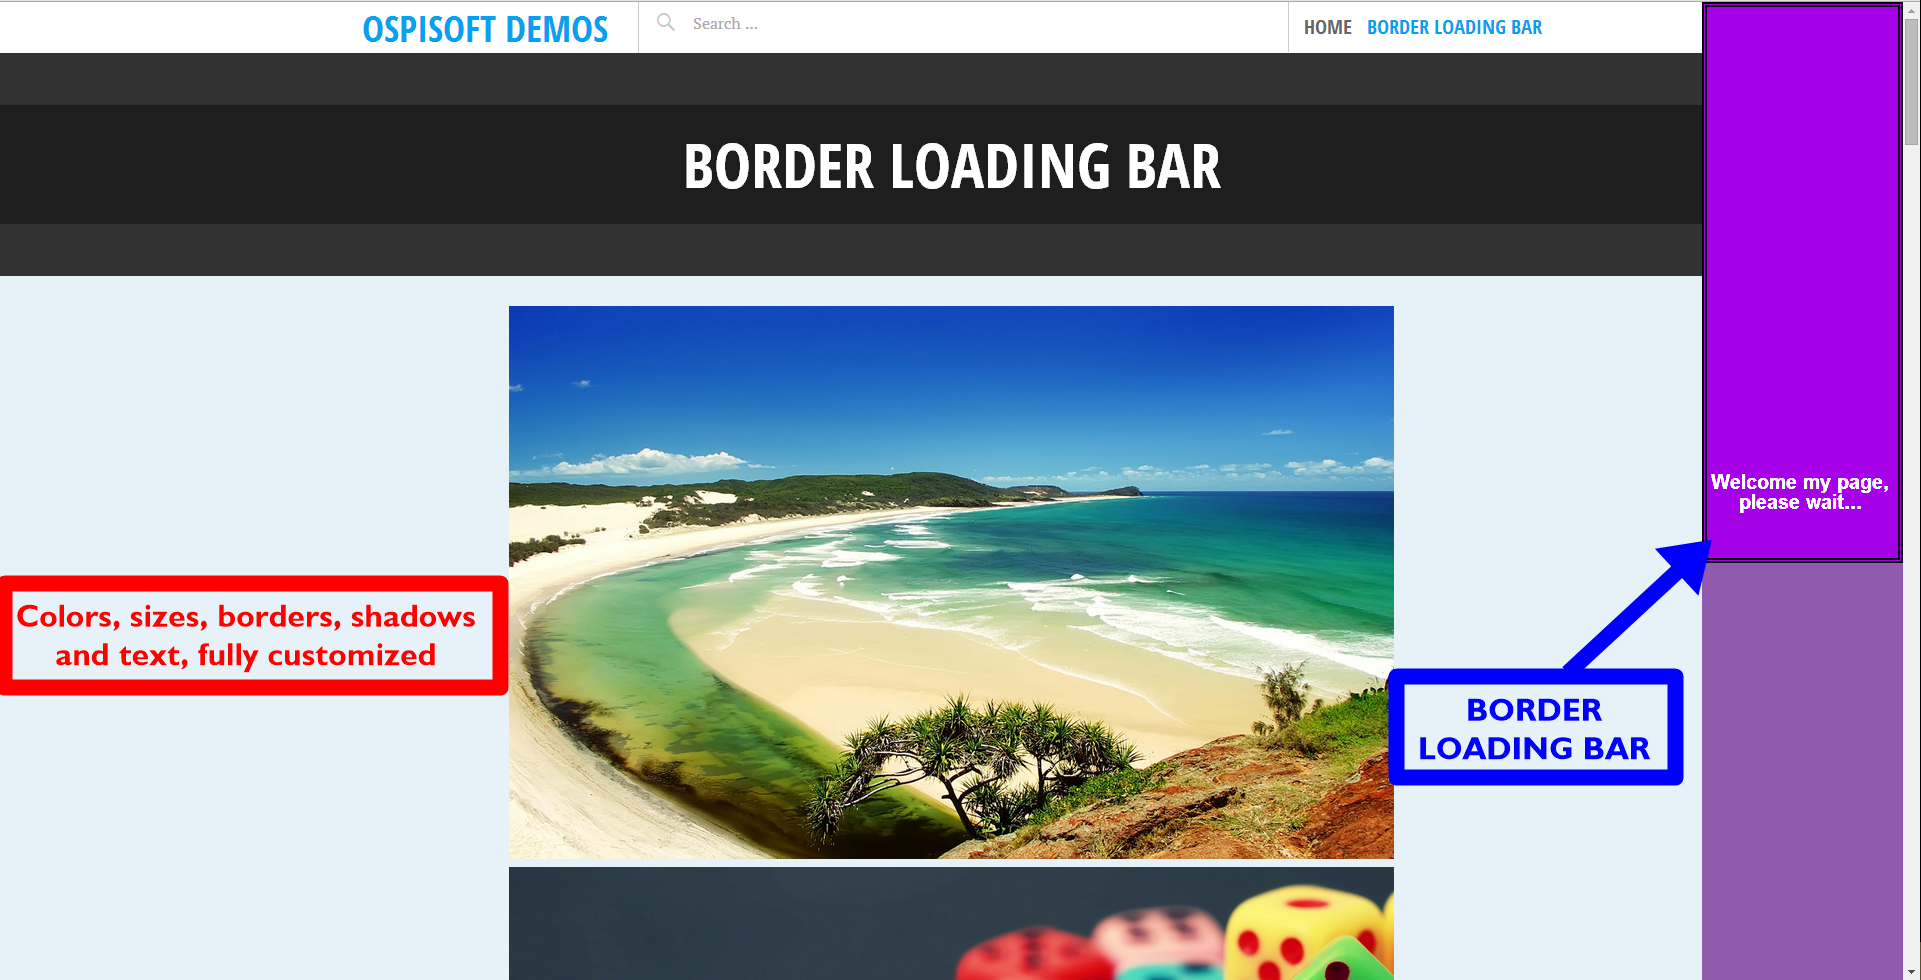 border-loading-bar screenshot 3